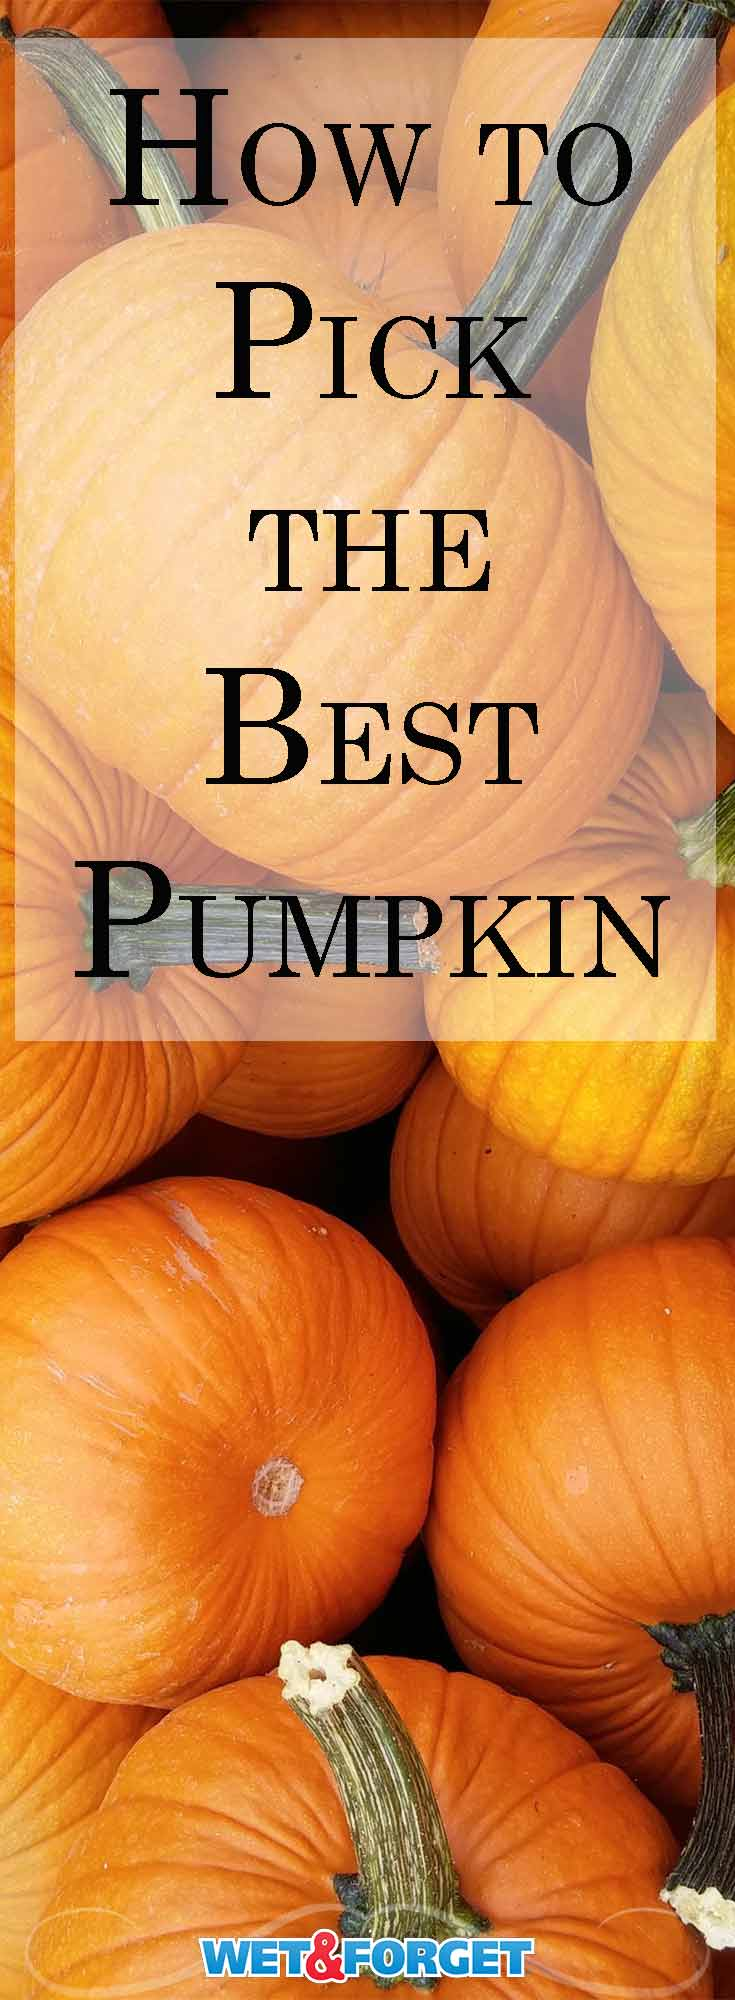 Pumpkins come in many shapes, sizes and colors. Use our guide to pick the best pumpkin for your needs!